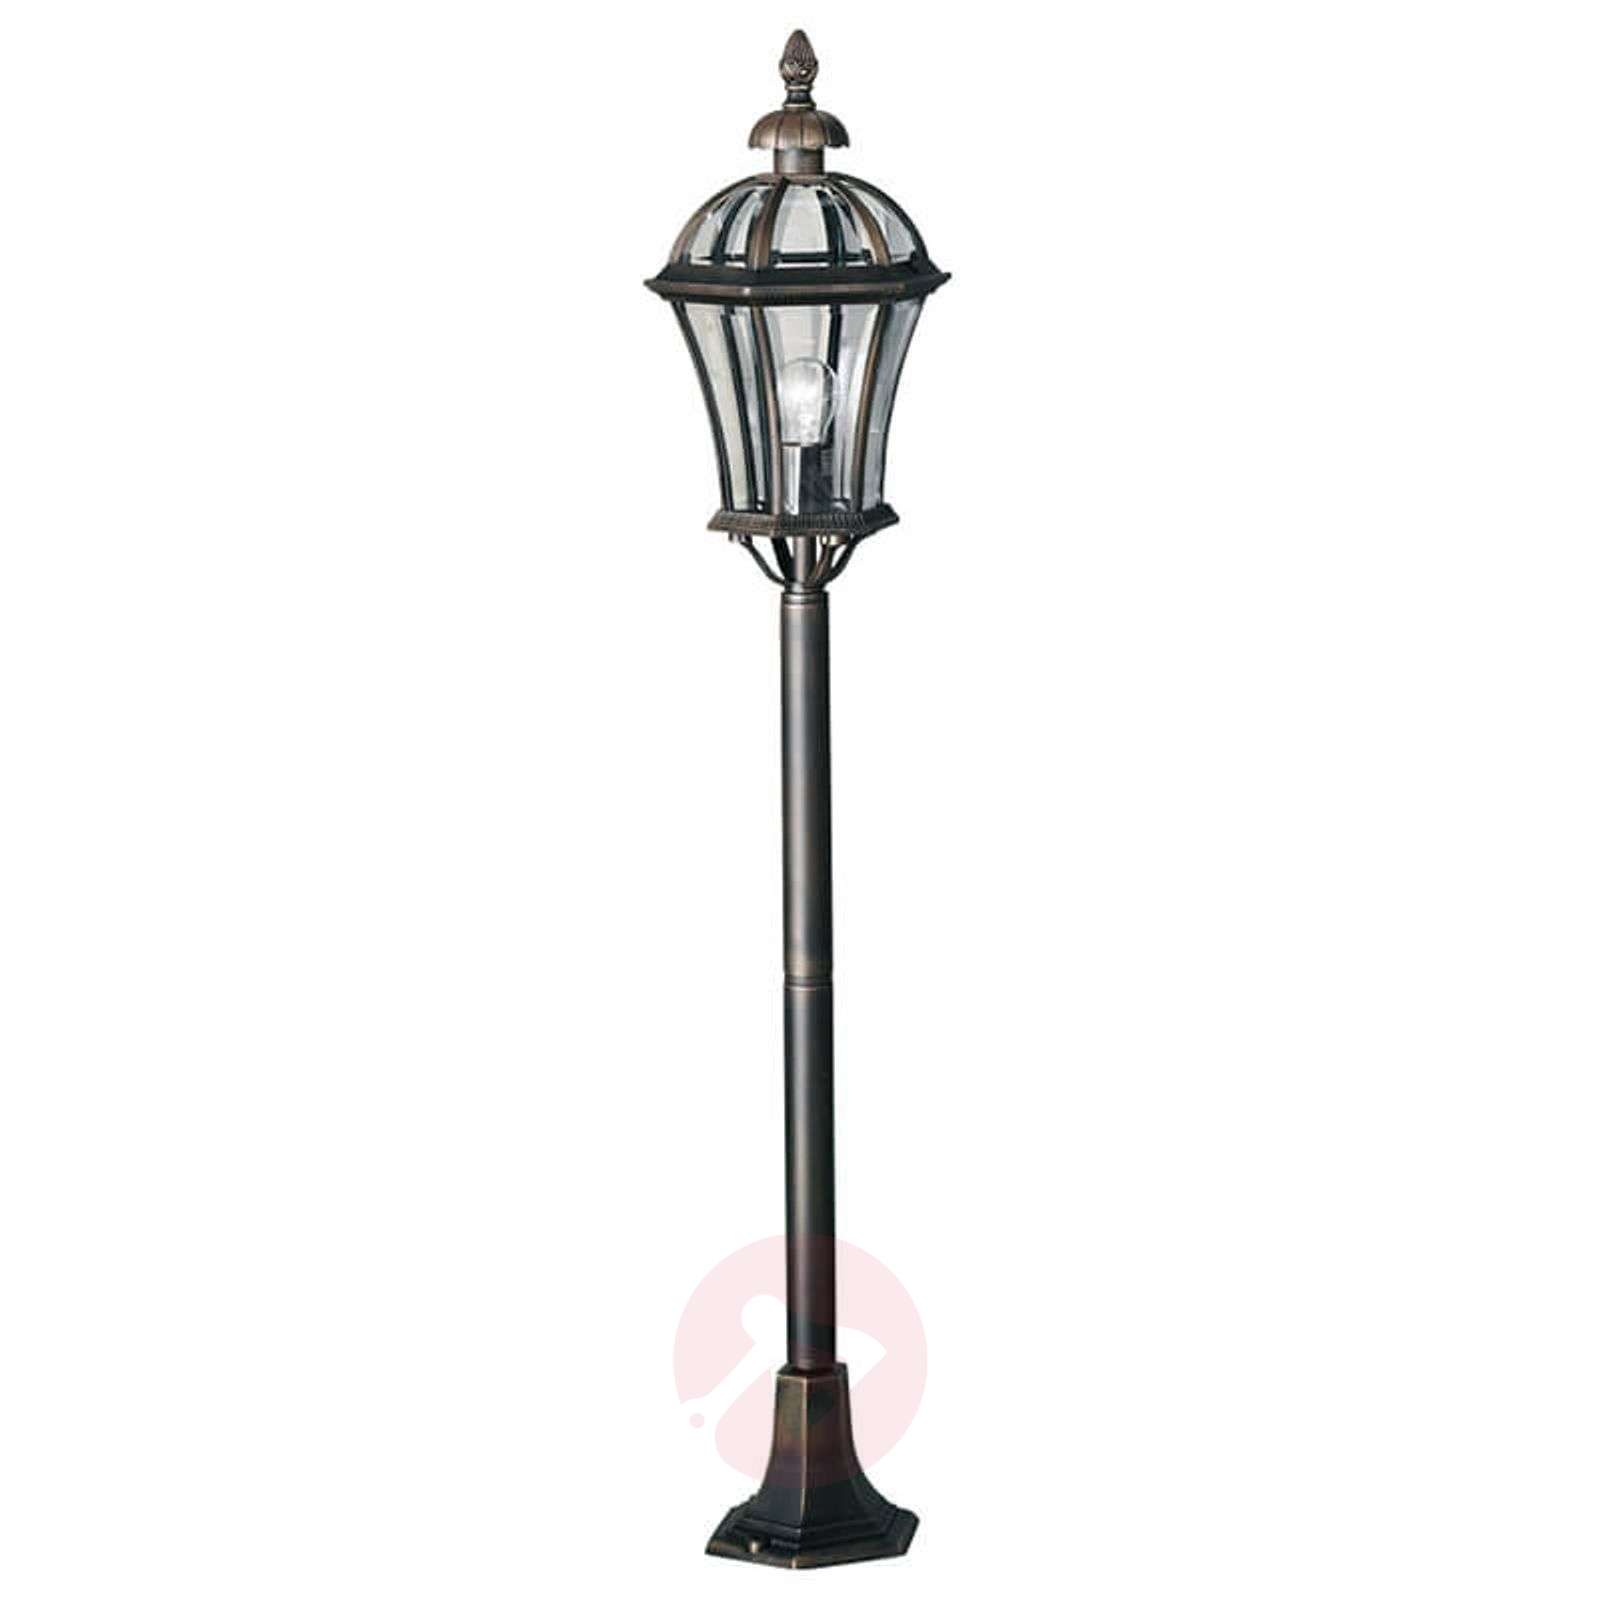 Borne lumineuse traditionnelle Westminster rouille-5560294-01